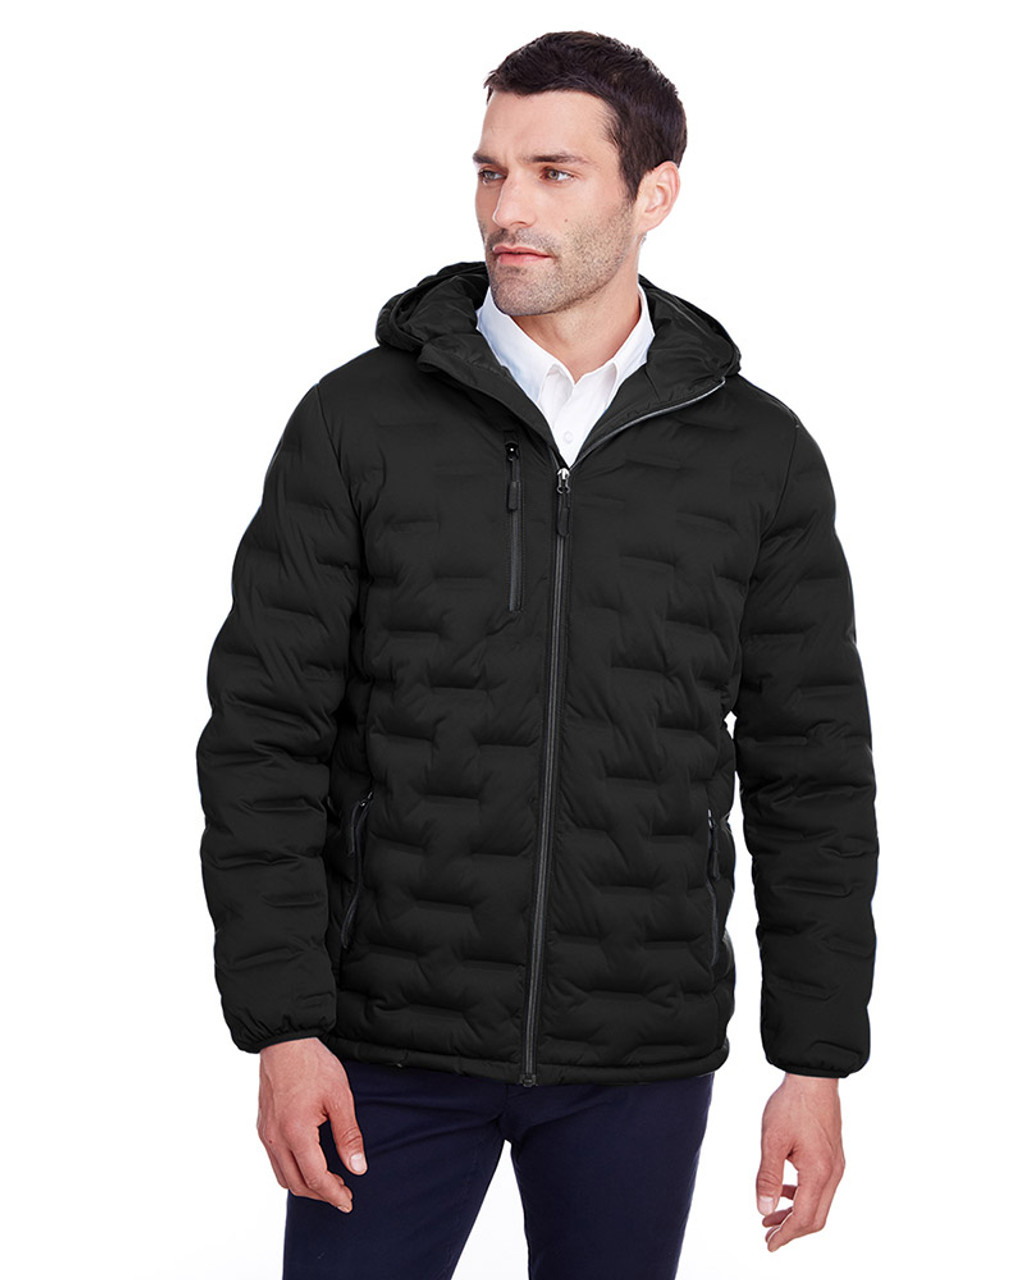 Black/Carbon - NE708 North End Men's Loft Puffer Jacket | Blankclothing.ca